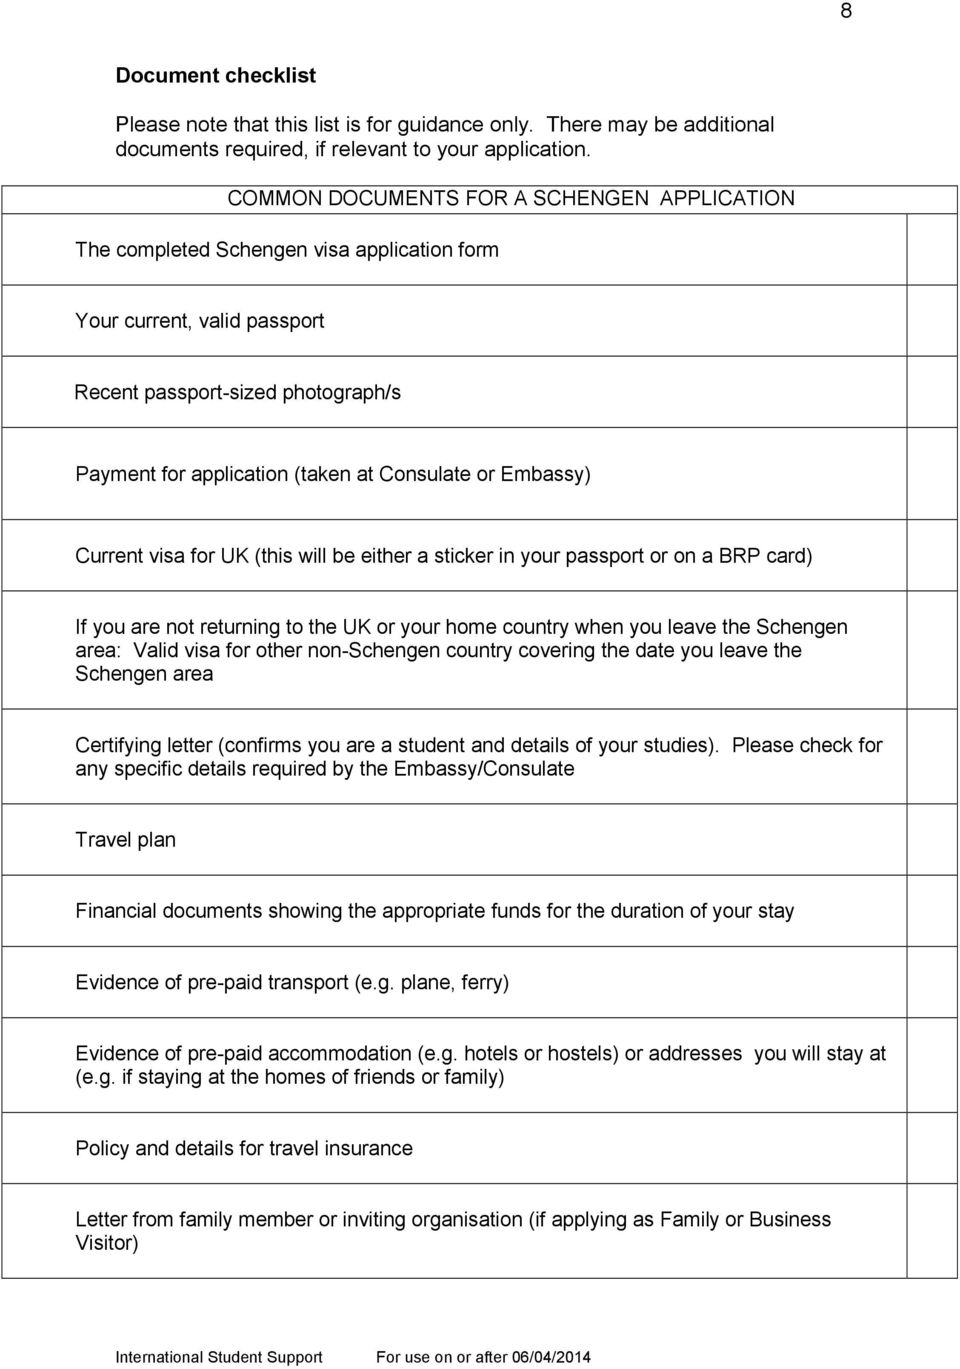 Applying for a Schengen visa - PDF